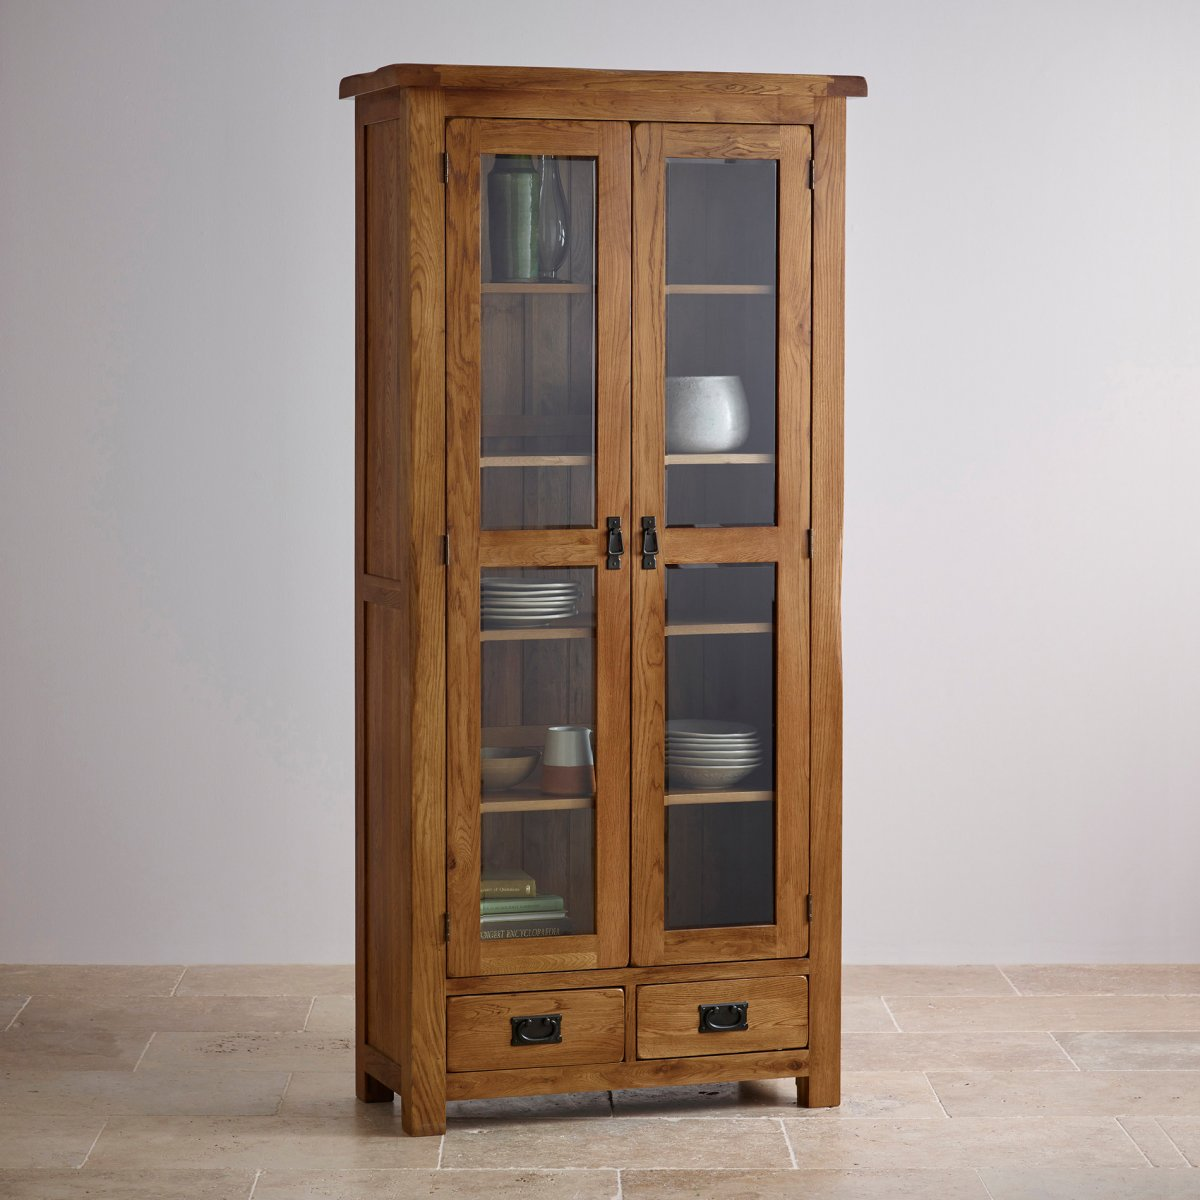 Rustic Oak Kitchen Cabinets: Original Rustic Glazed Display Cabinet In Solid Oak